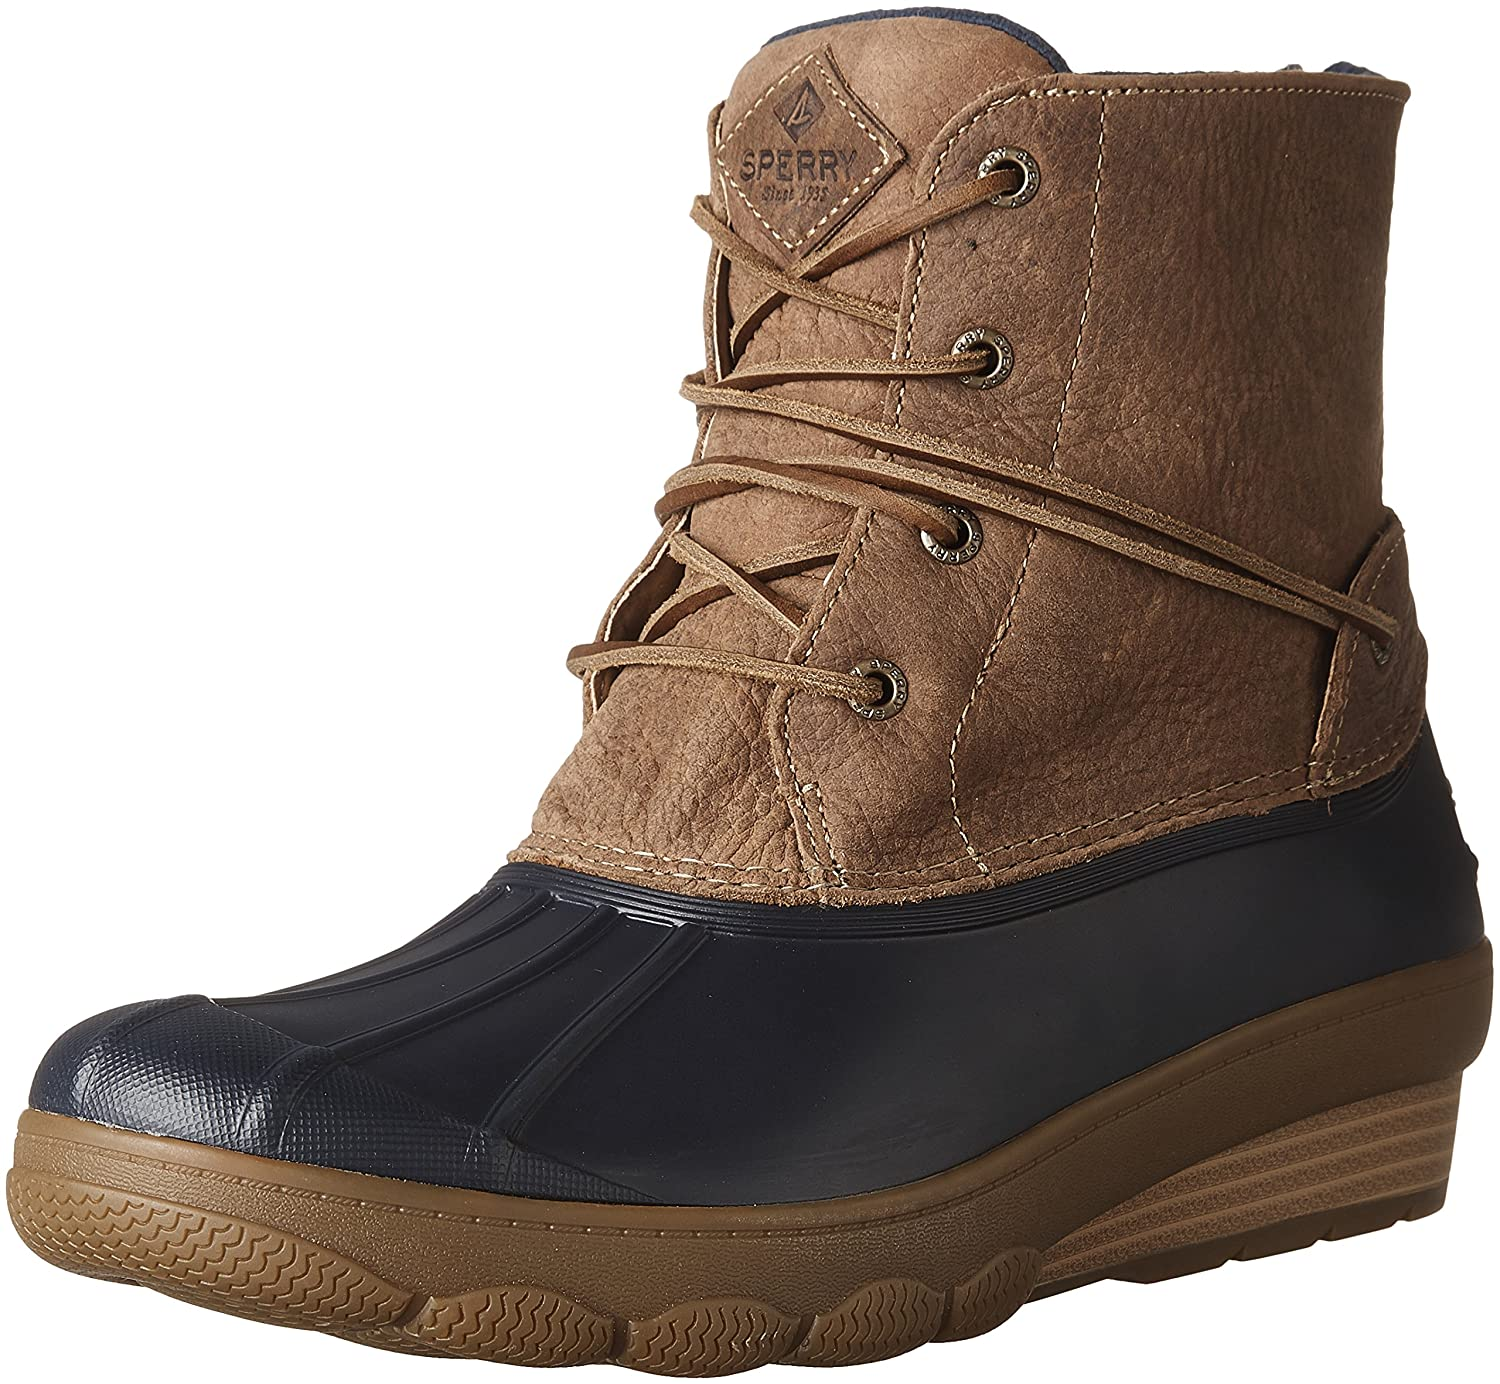 Sperry Top-Sider Women's Saltwater Wedge Tide Rain Boot B01MR70J0S 12 B(M) US|Navy/Tan